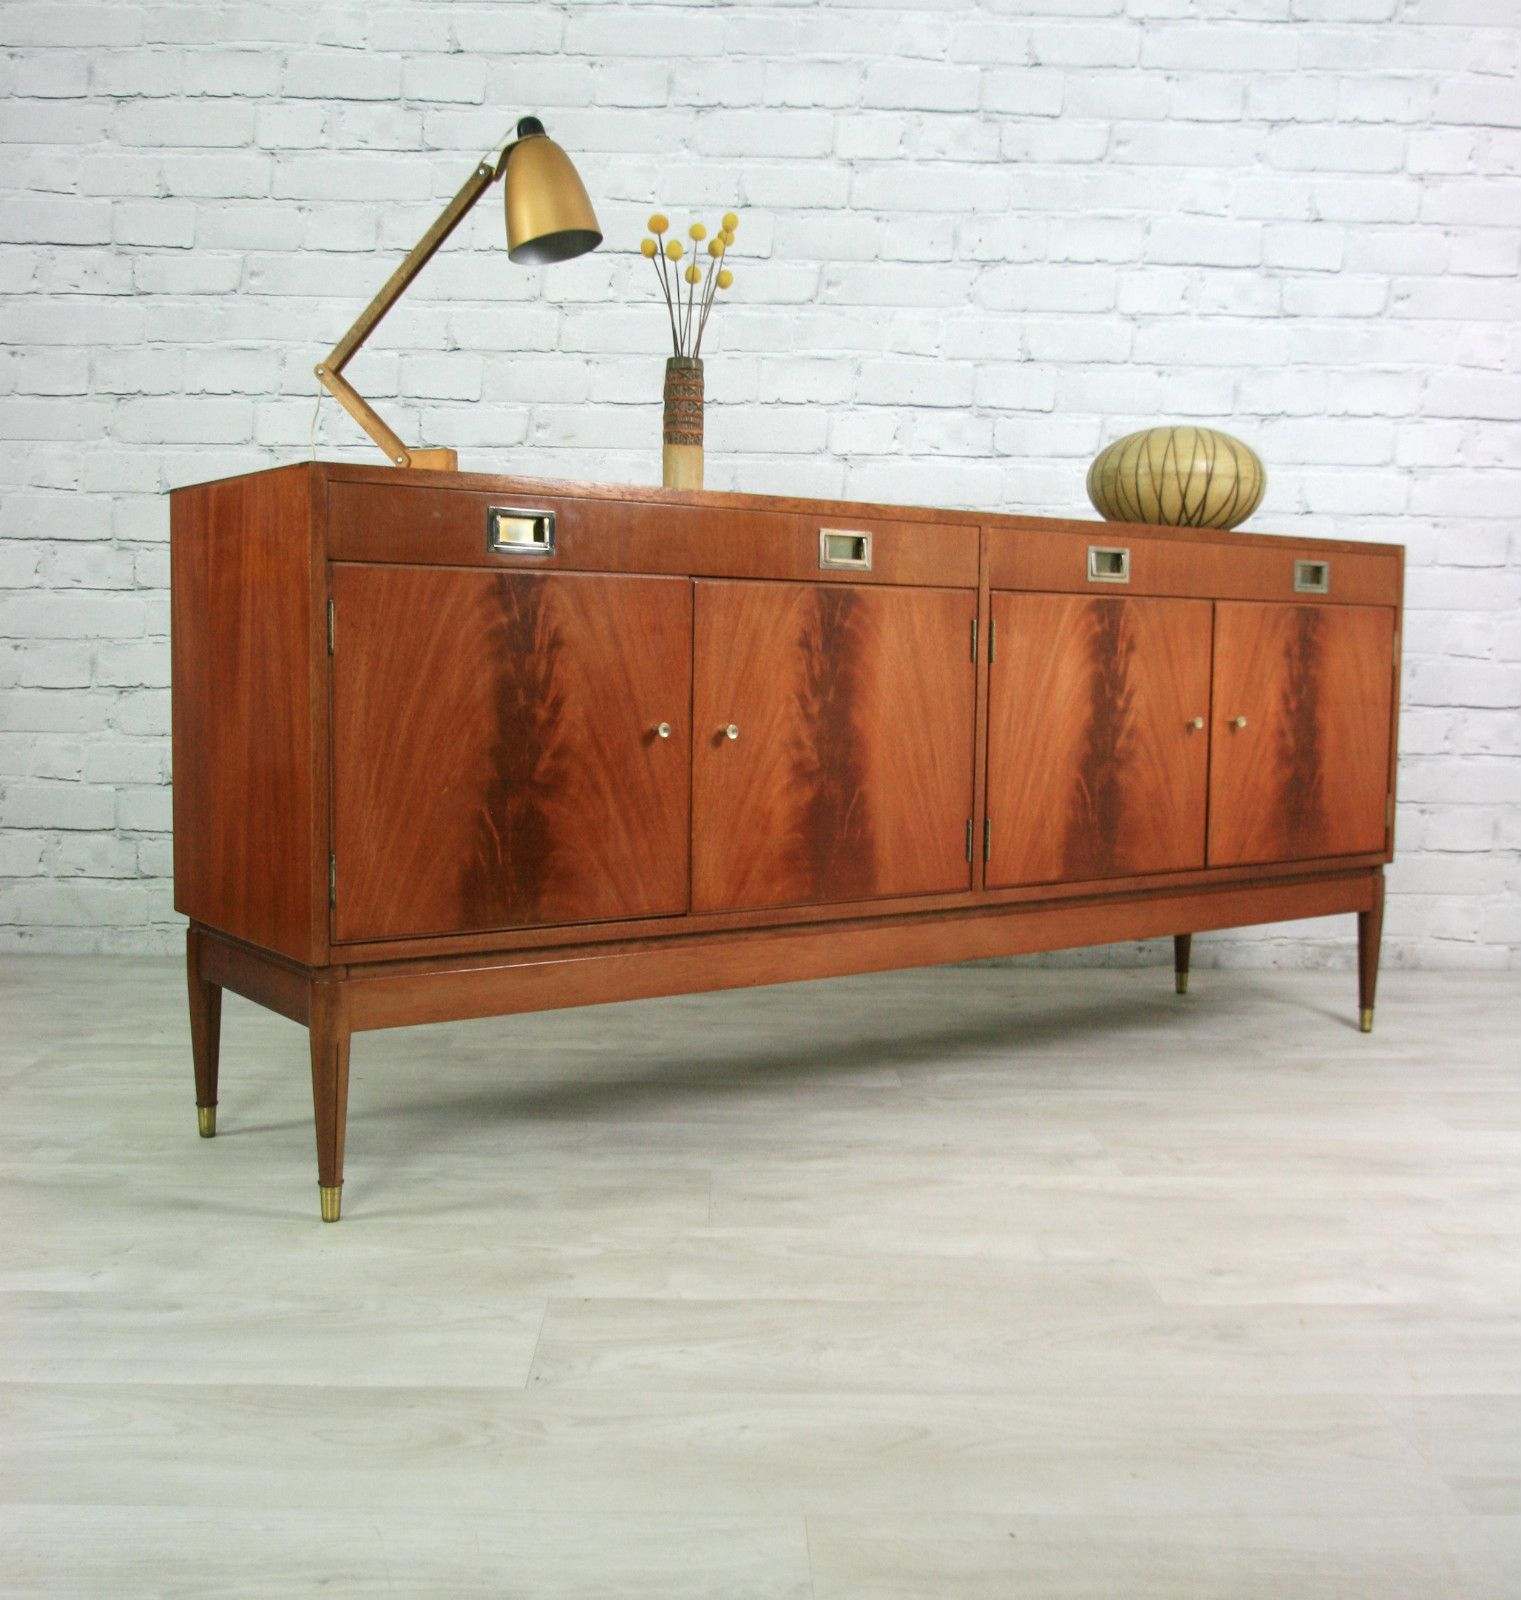 Greaves & Thomas sideboard 60s retro furniture, Mid